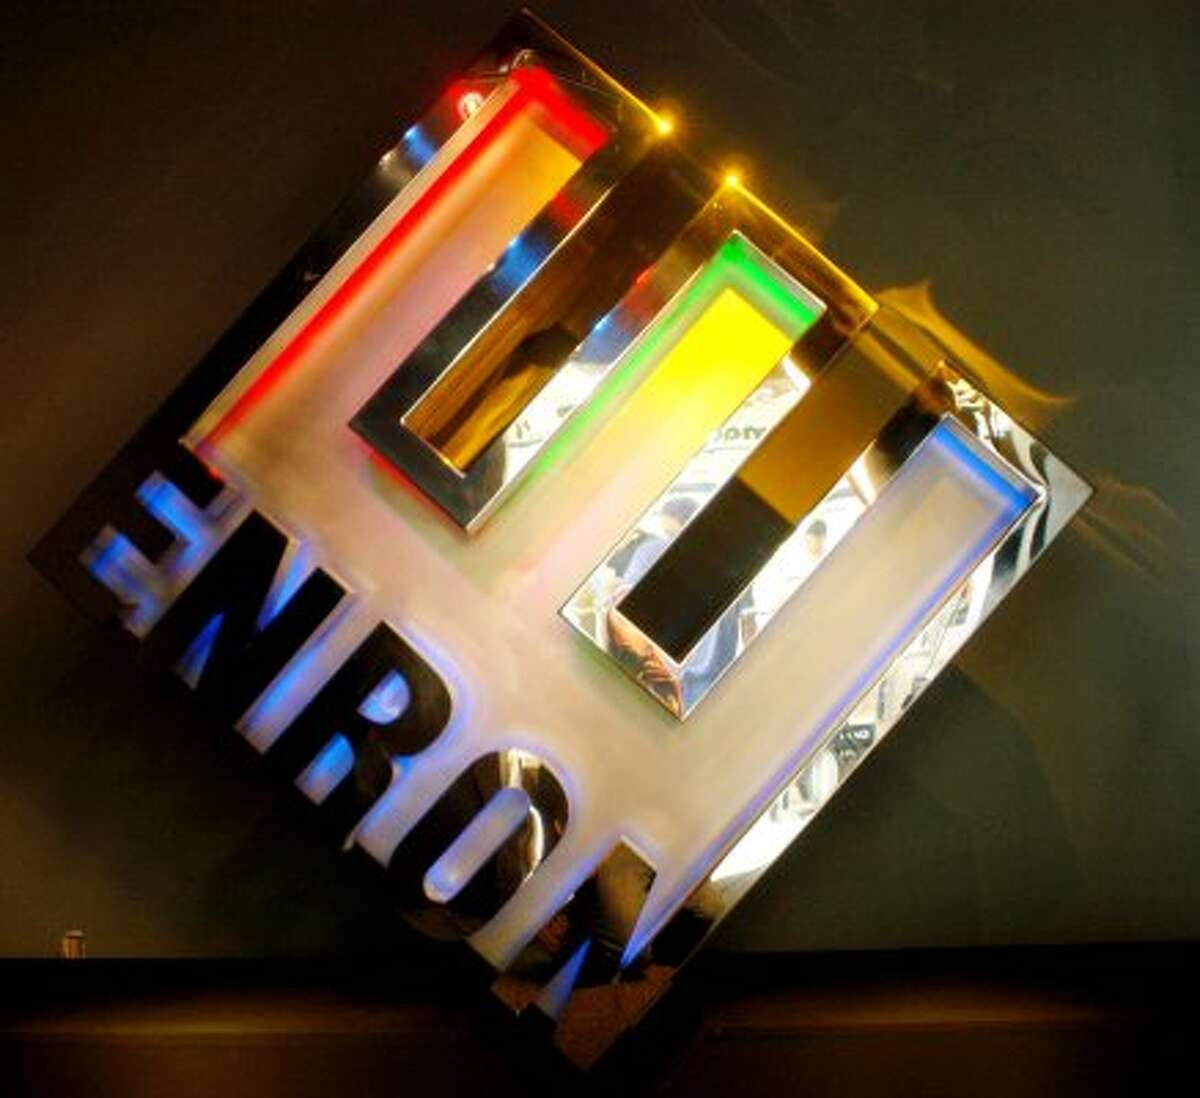 In total, 32 people and one firm had charges brought before federal courts stemming from the energy giant's fallout. See what happened to some of the biggest players in the Enron scandal.